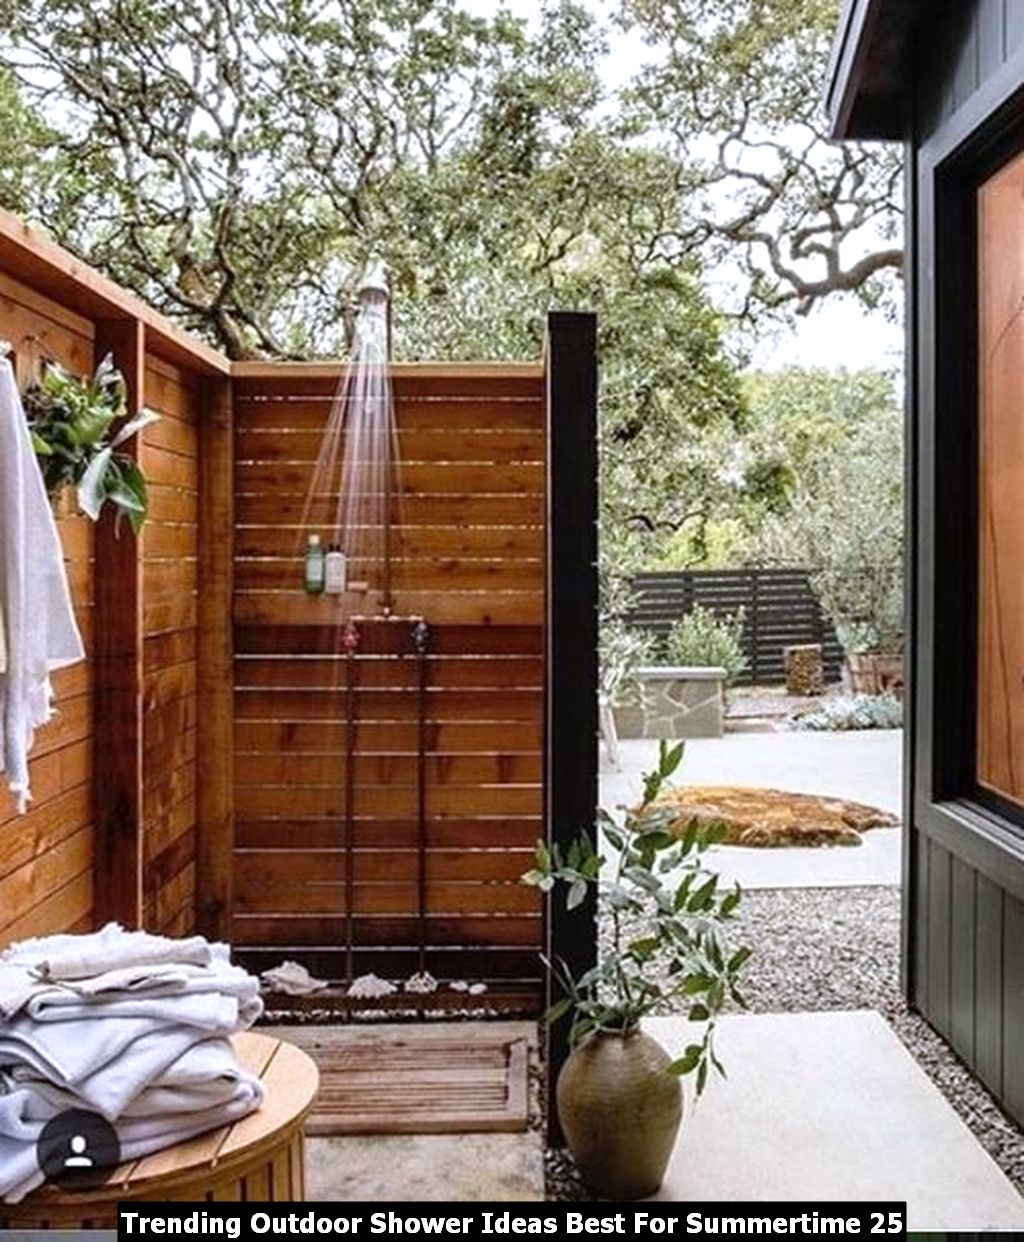 Trending Outdoor Shower Ideas Best For Summertime 25